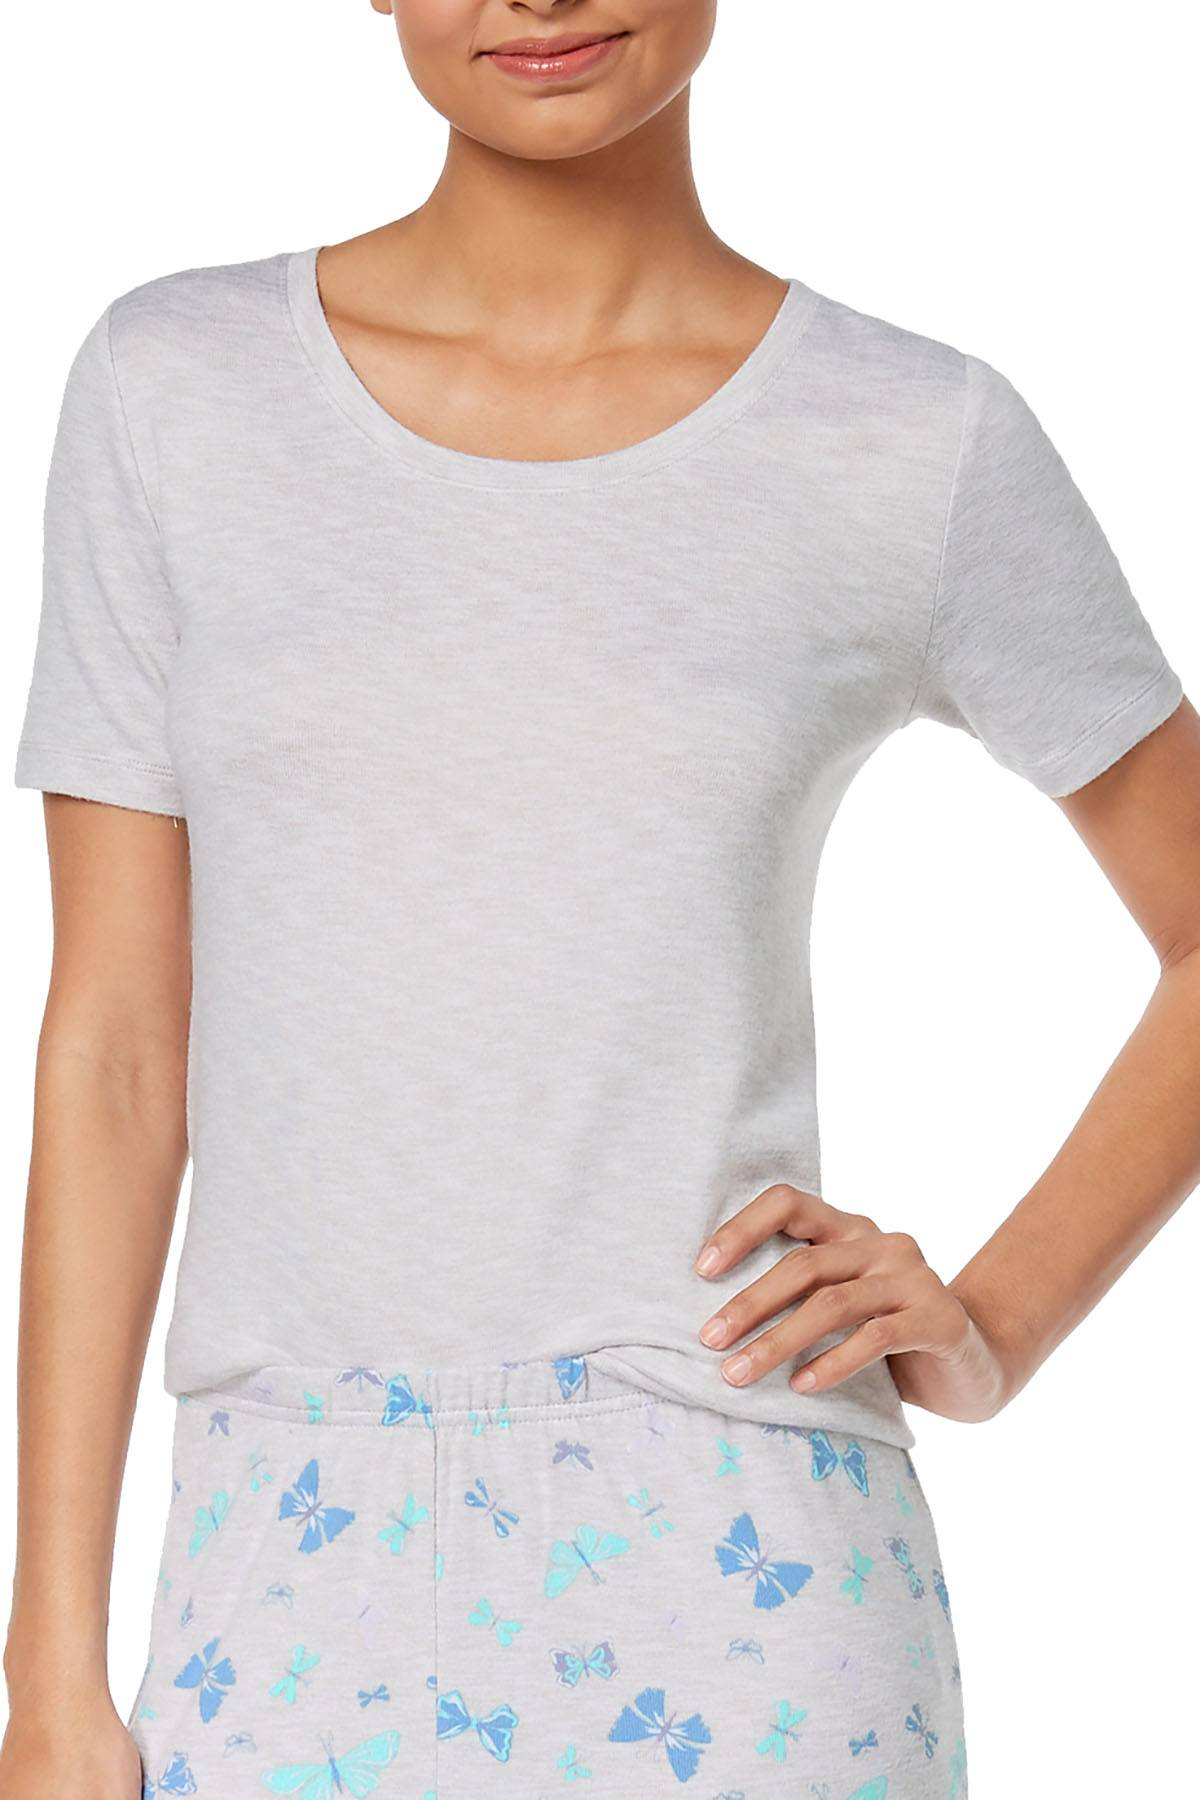 Charter Club Intimates Grey-Day Super-Soft Lounge Top